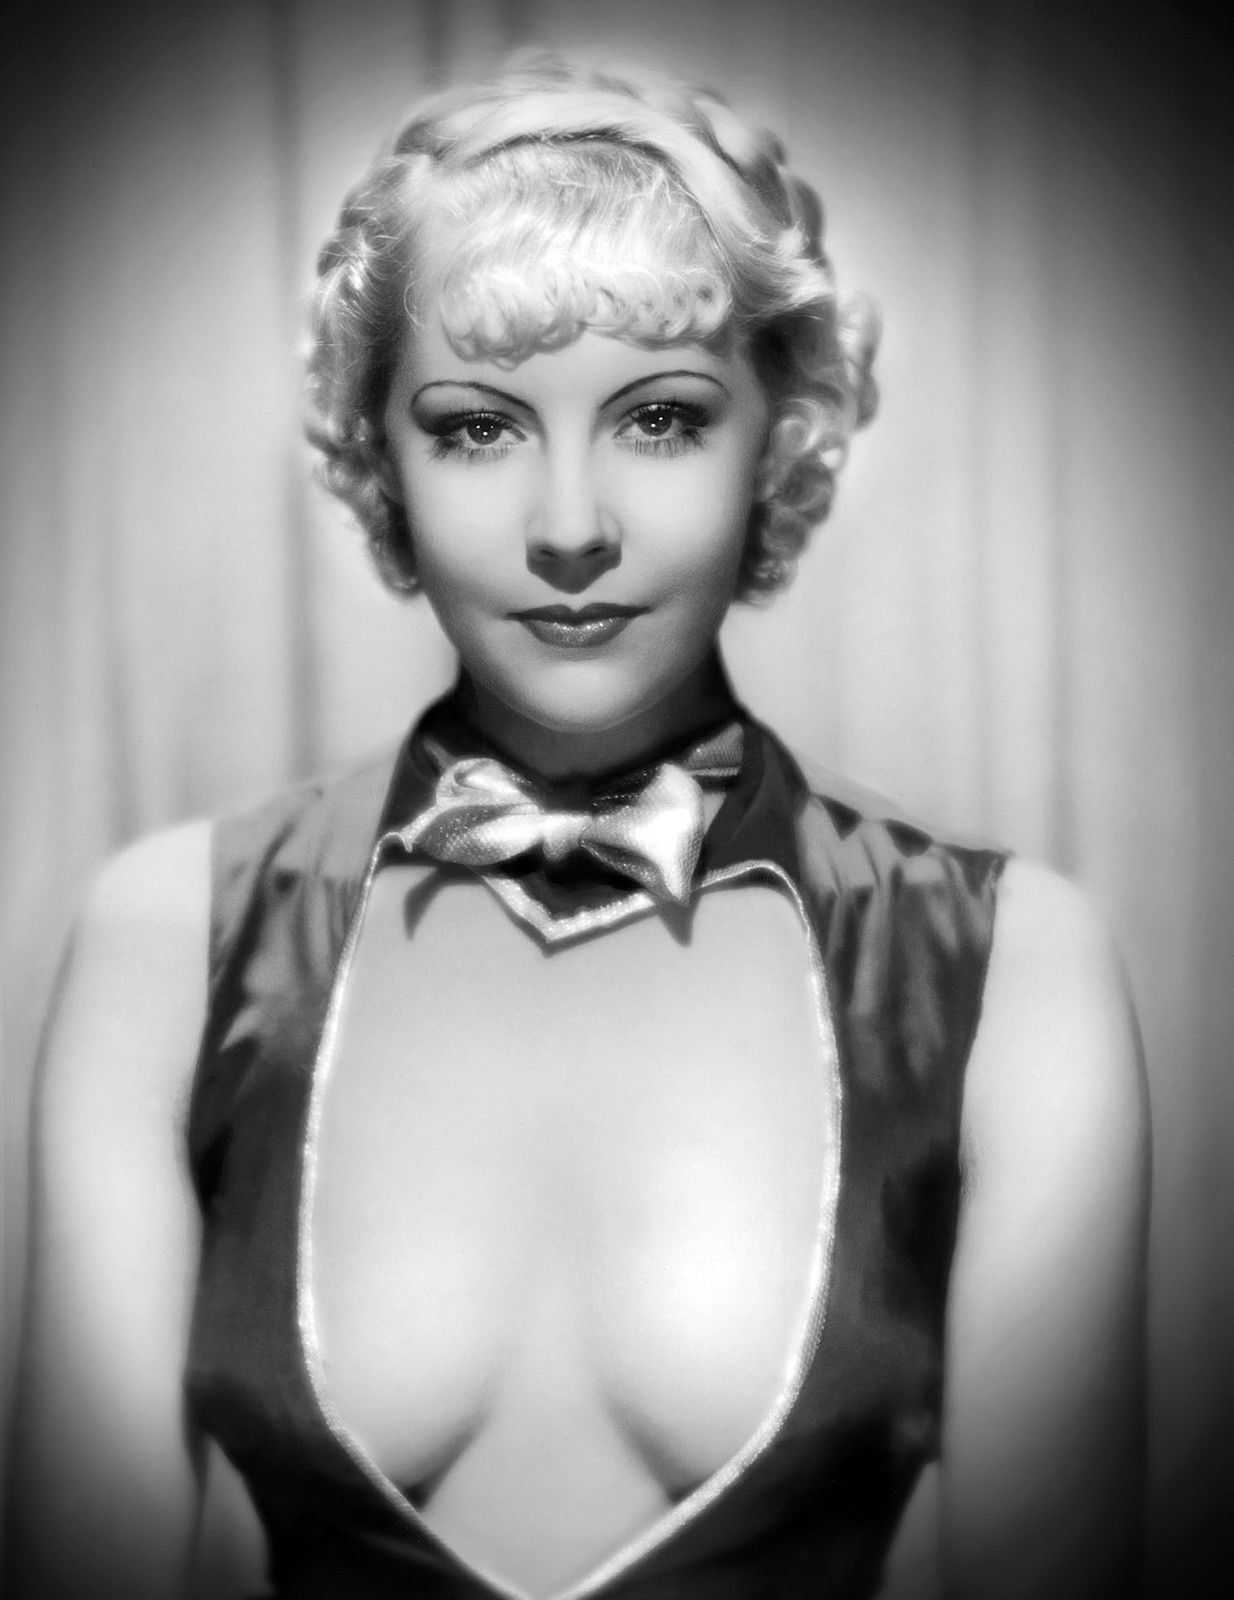 June Knight: 1930s Broadway and Film Star